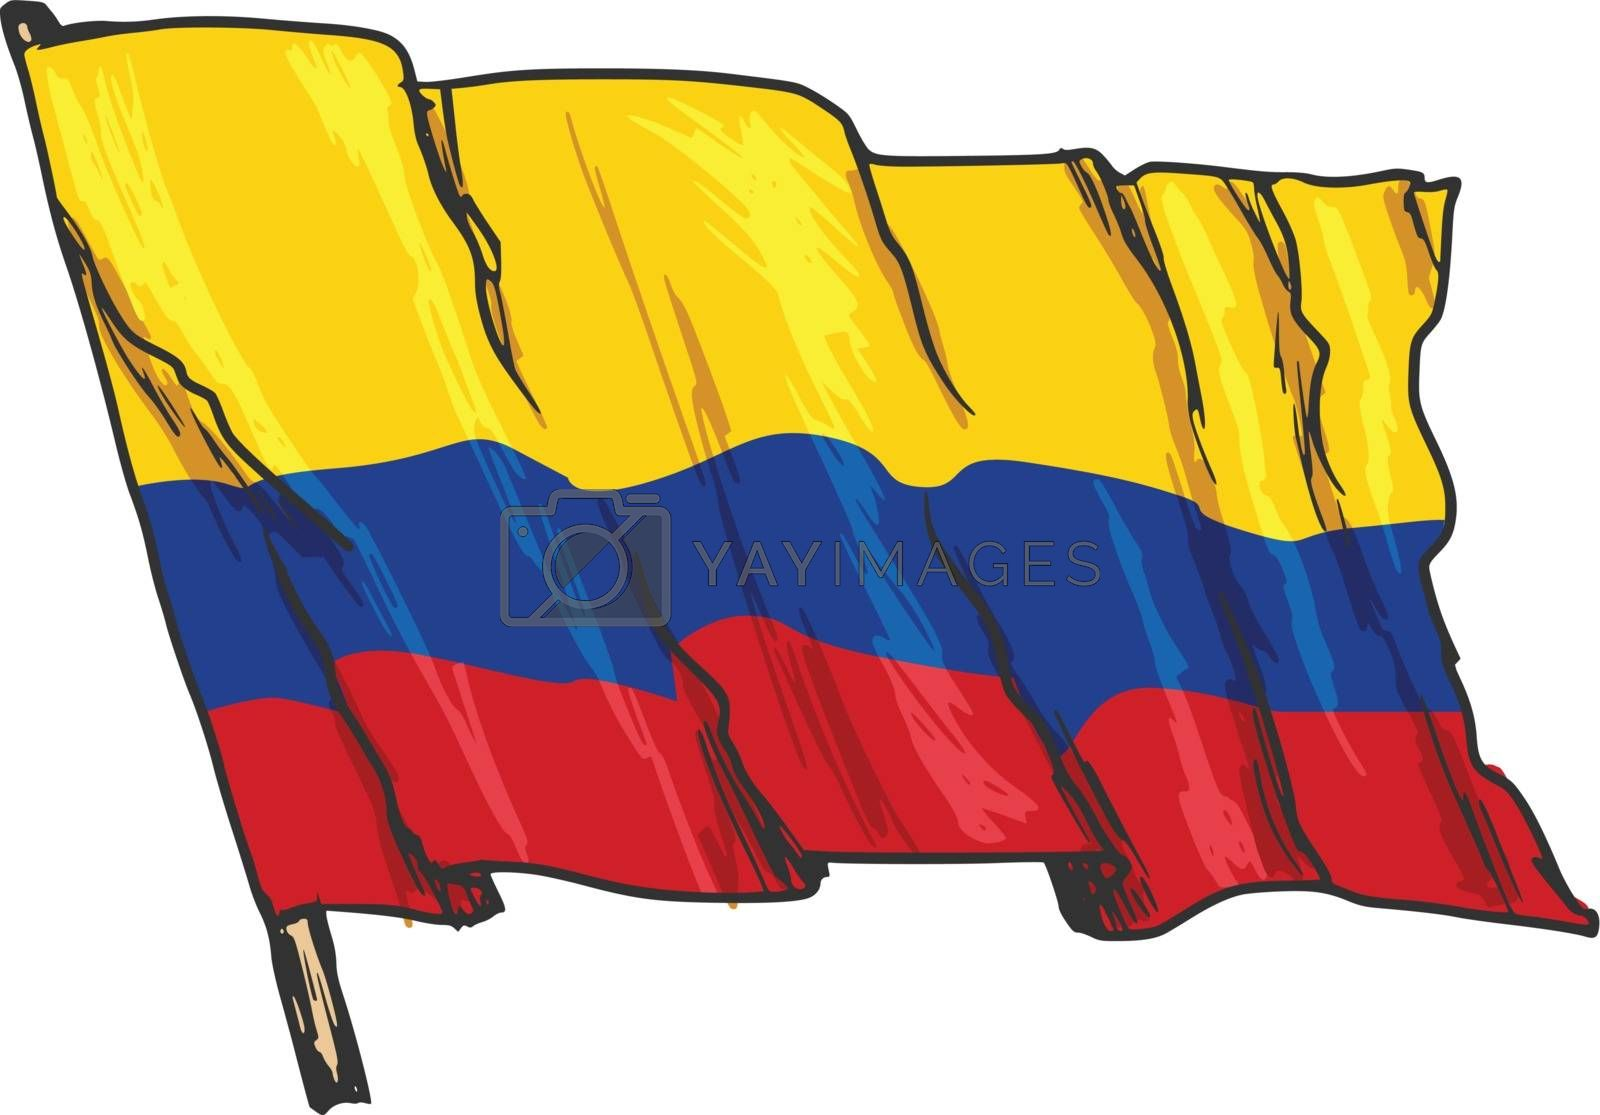 hand drawn, sketch, illustration of flag of Colombia